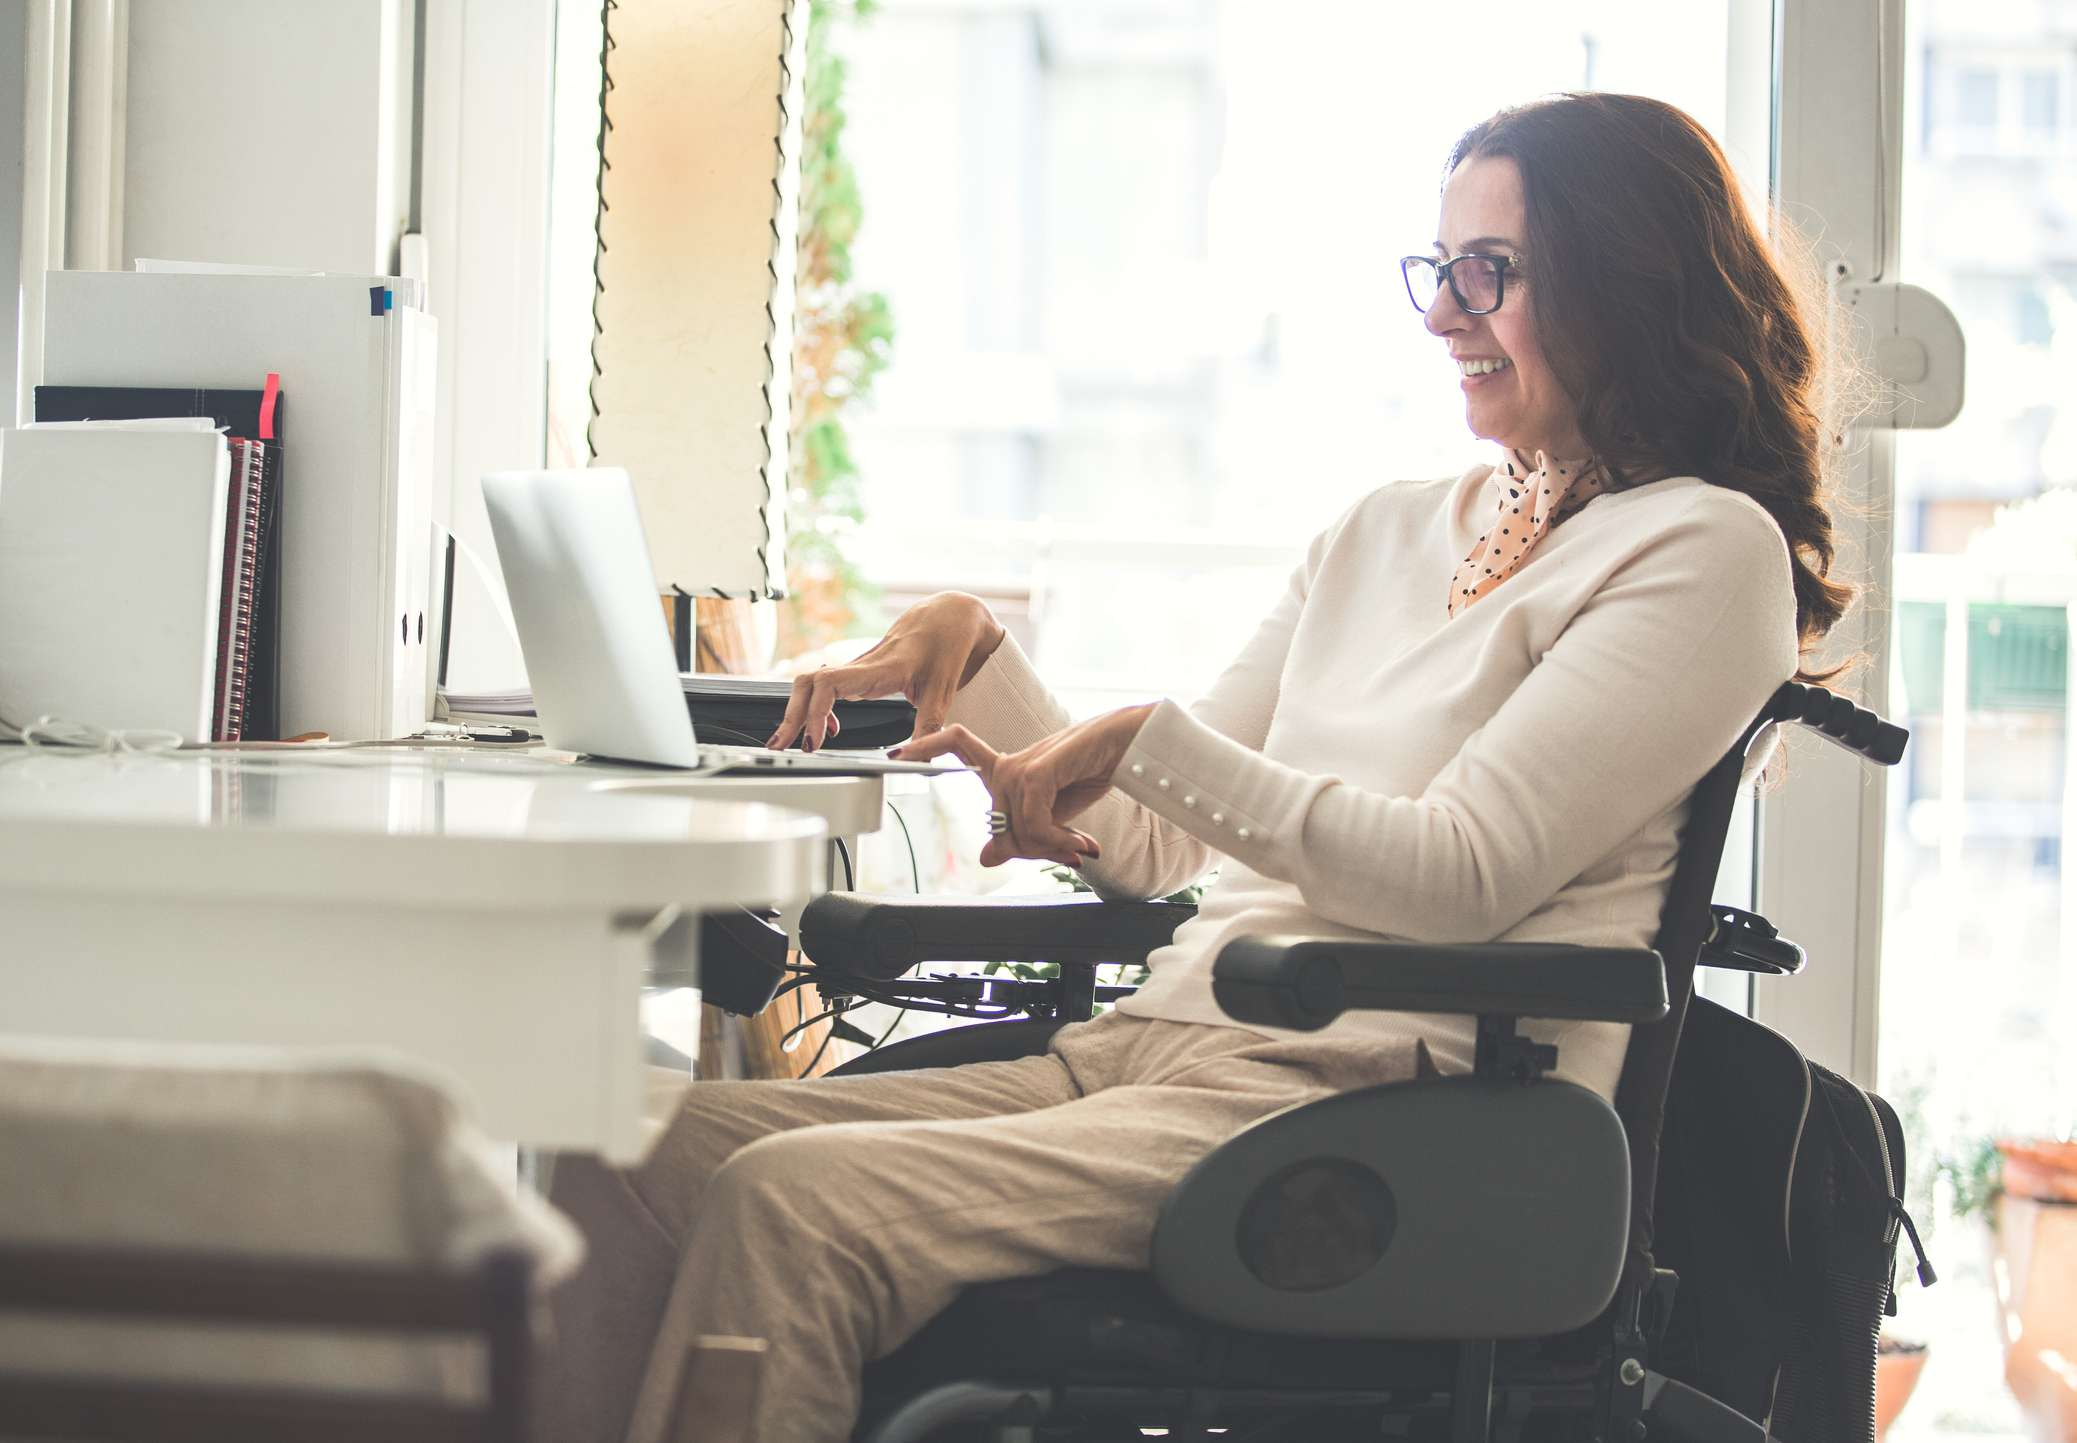 A person with disabilities working on a laptop computer in a home office.